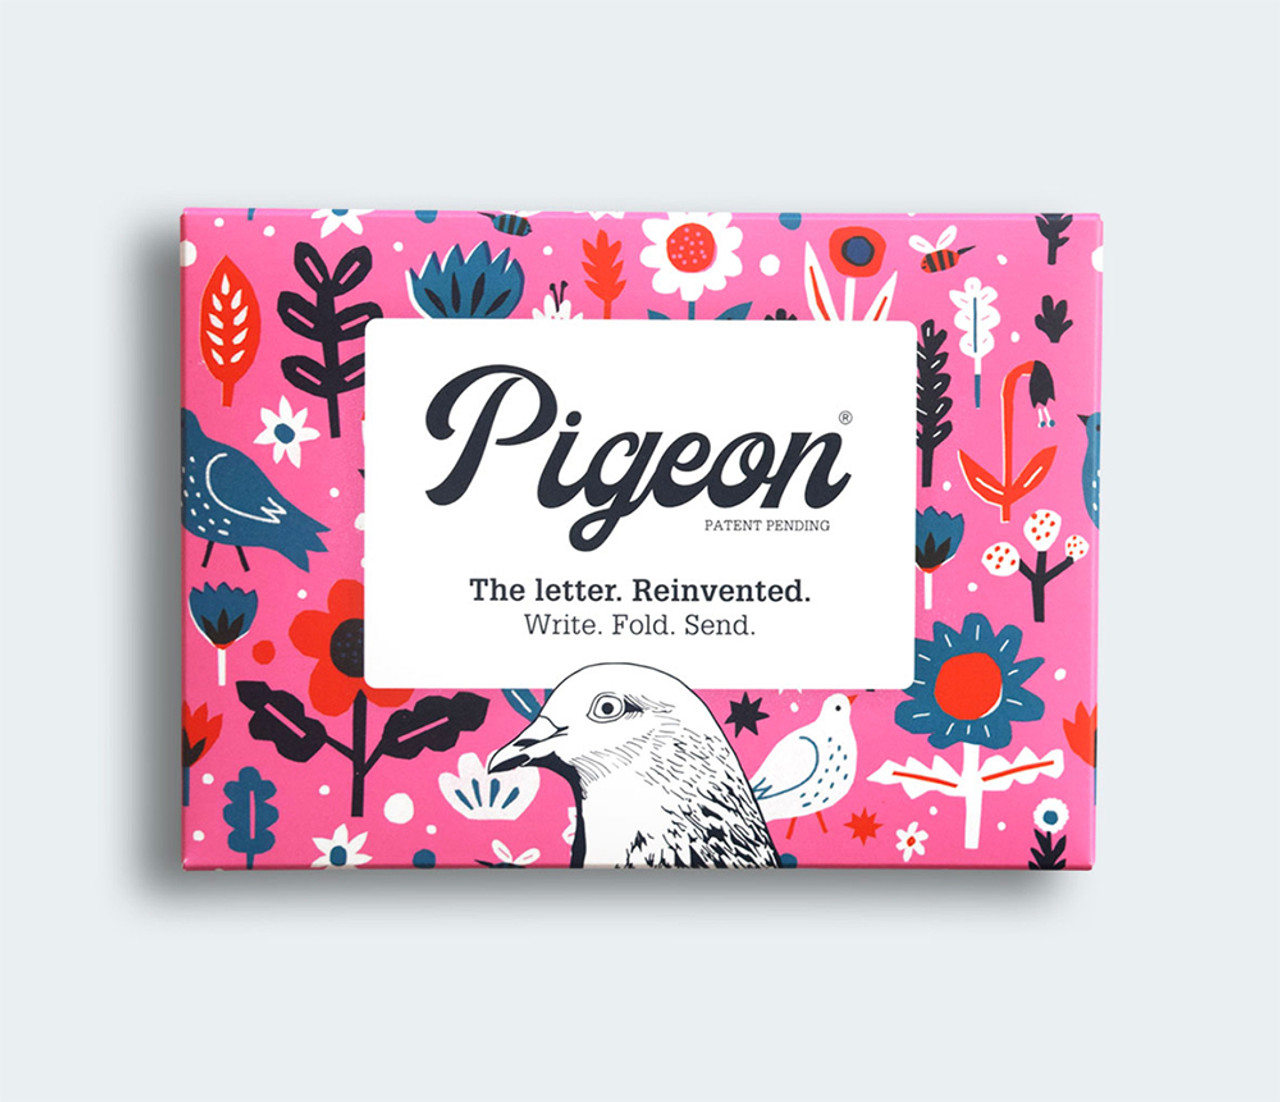 Pigeon Posted - Fiesta Pigeons pack